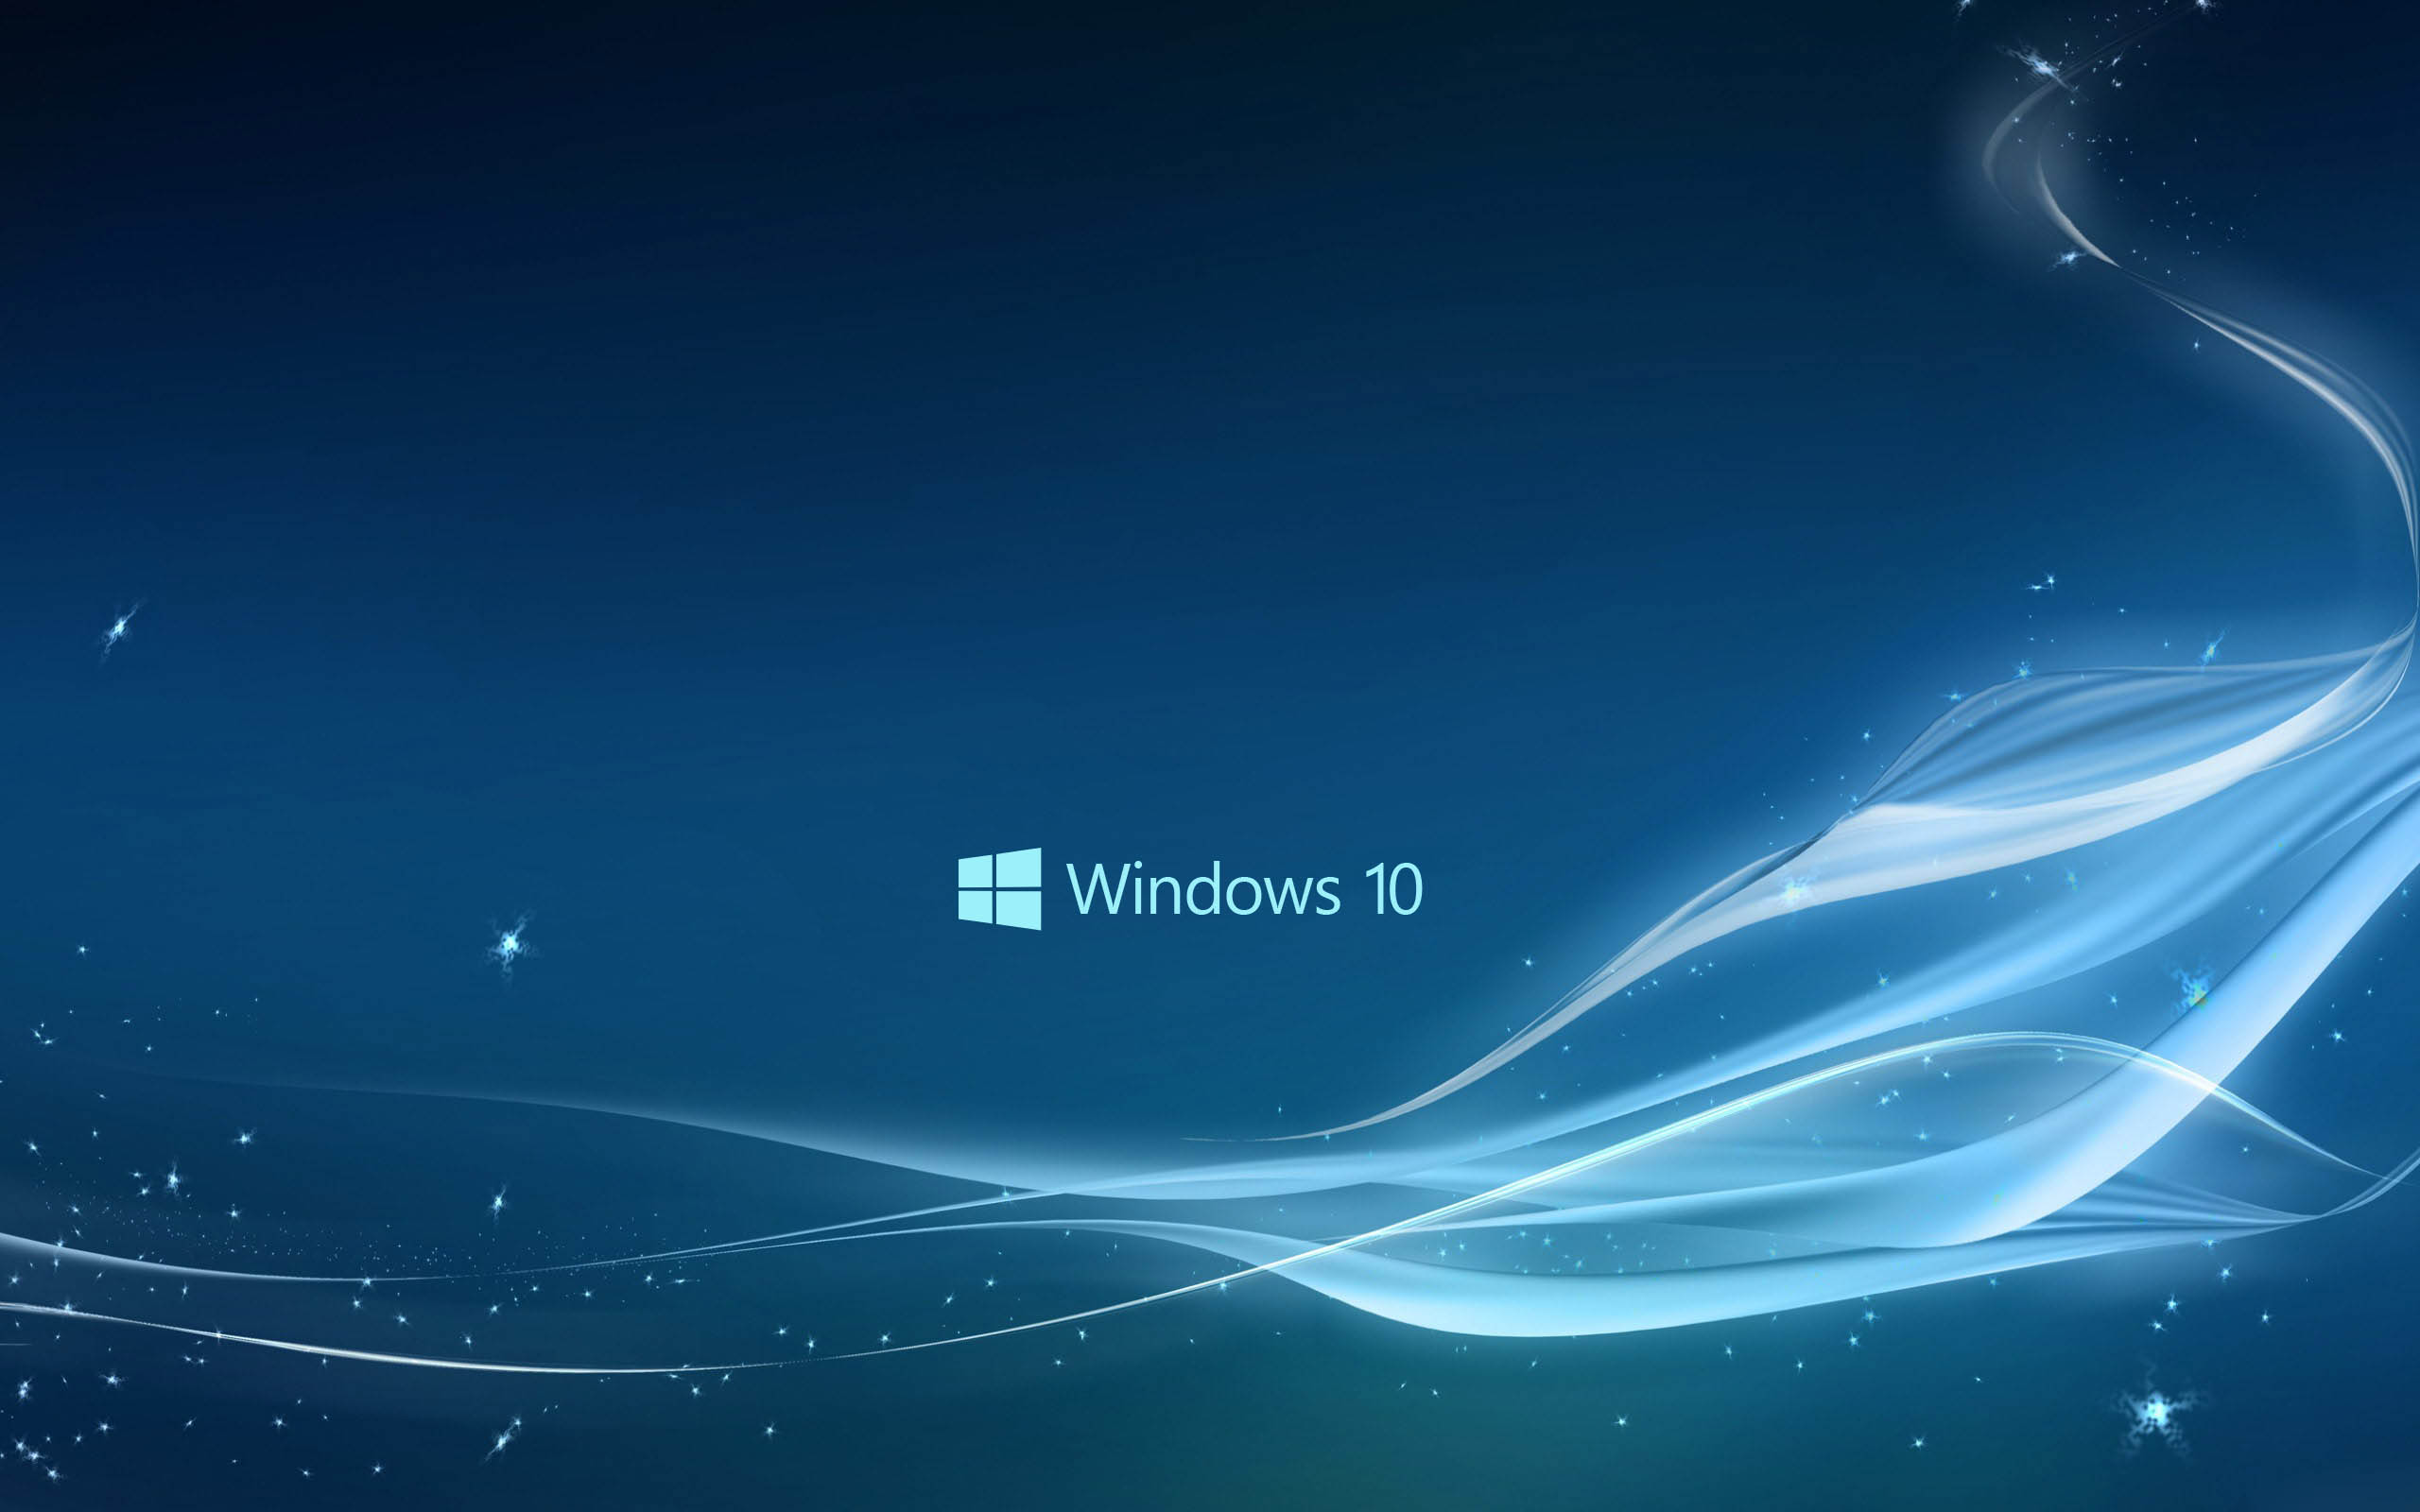 Best Windows 10 Wallpaper PC #15289 Wallpaper | WallpaperLepi